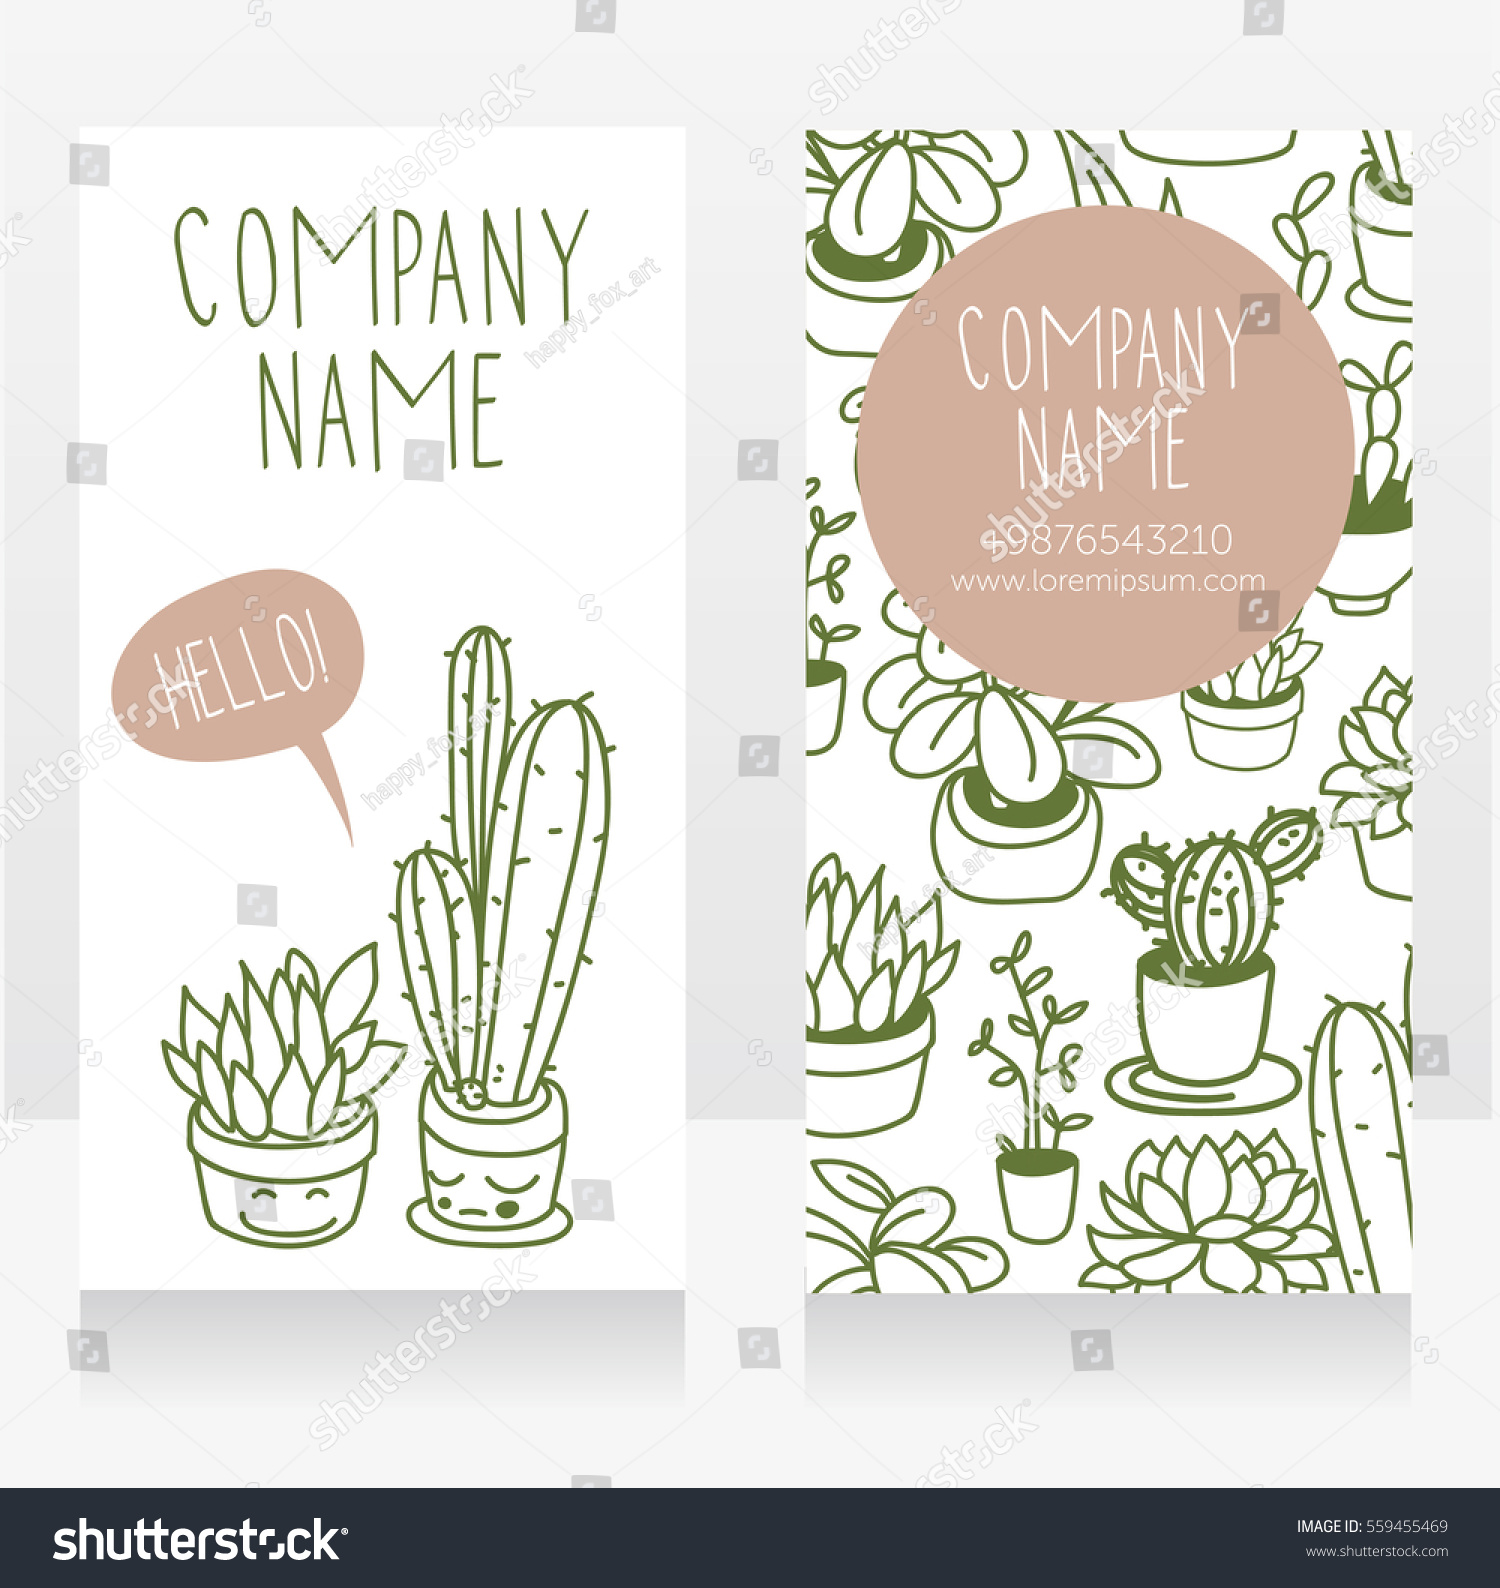 Cute business cards templates free image collections free cute business cards templates free image collections free funny fake business cards gallery free business cards magicingreecefo Gallery